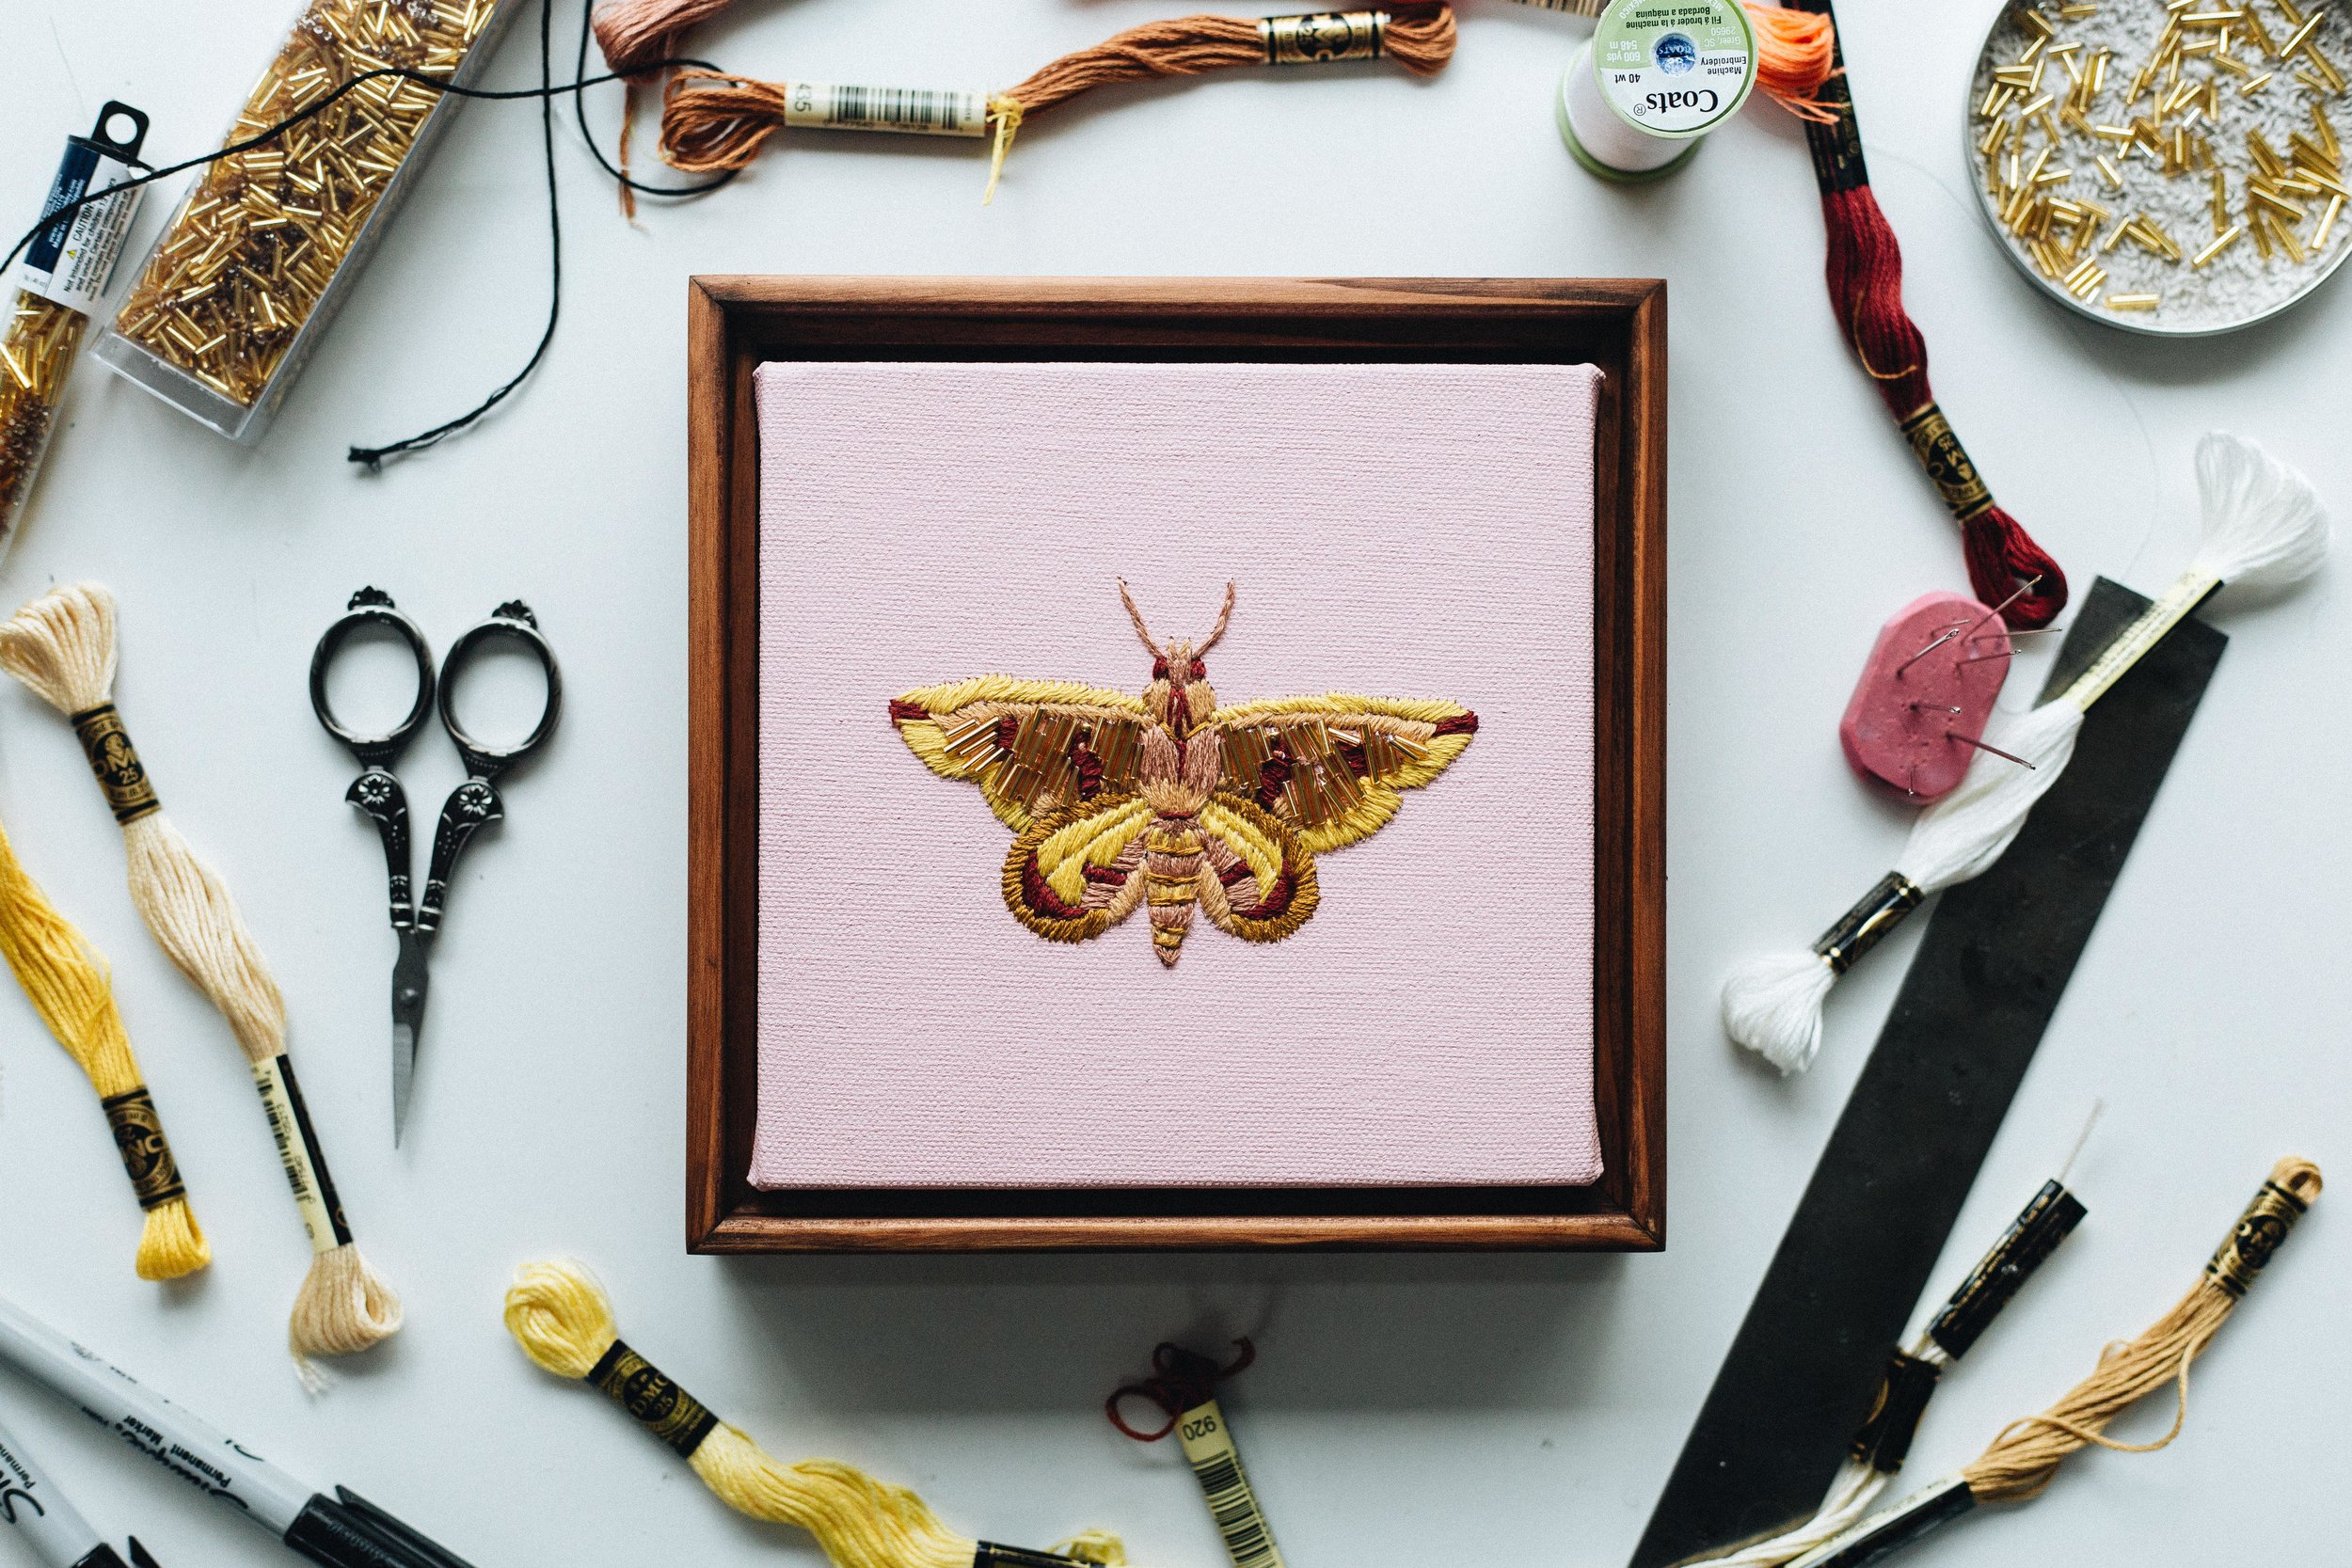 GOLDEN FIGURE MOTH 1.jpg